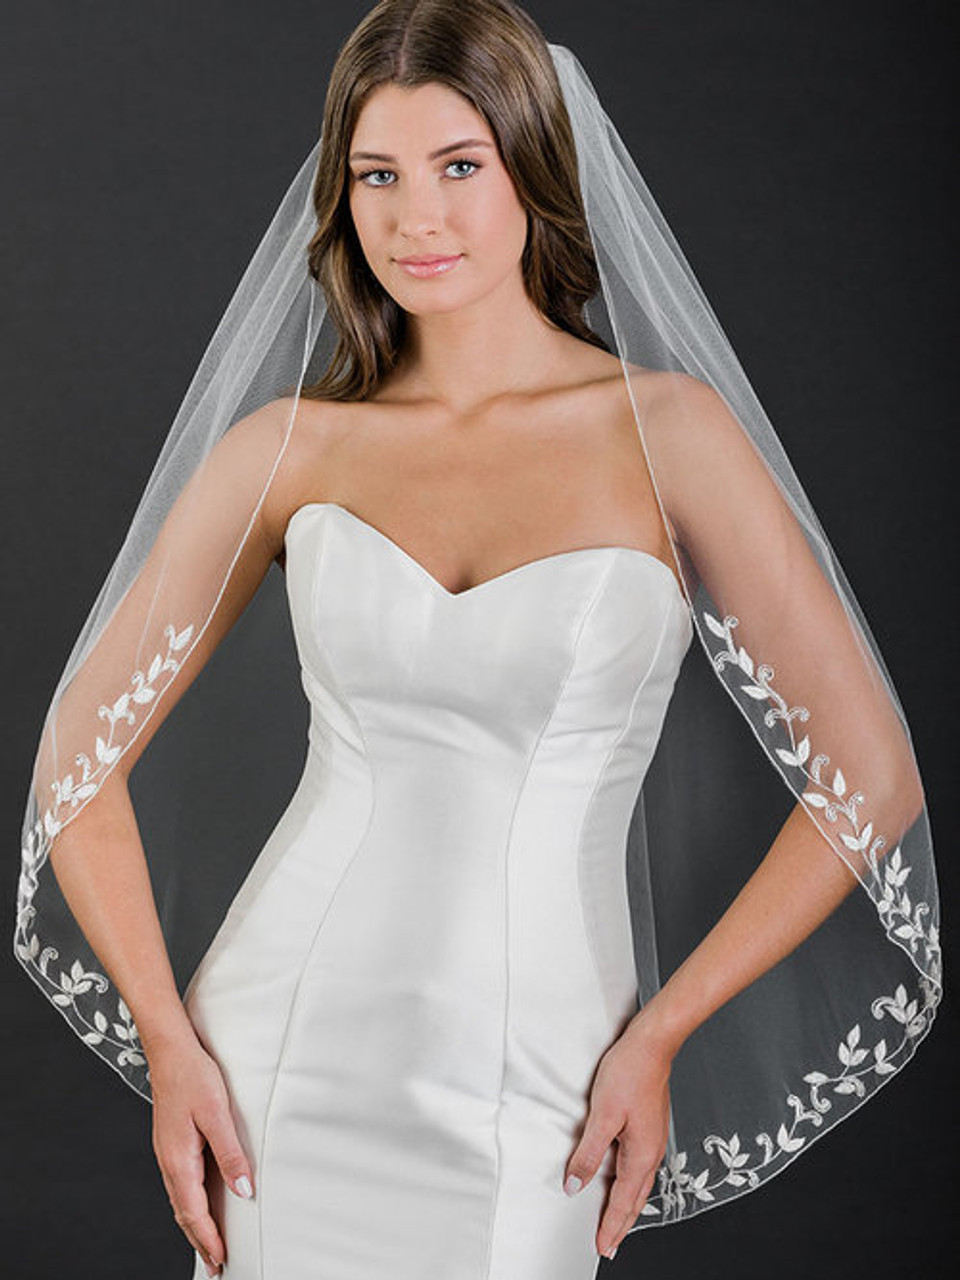 Bel Aire Bridal Veil 1-tier fingertip veil with beaded leaf embroidery